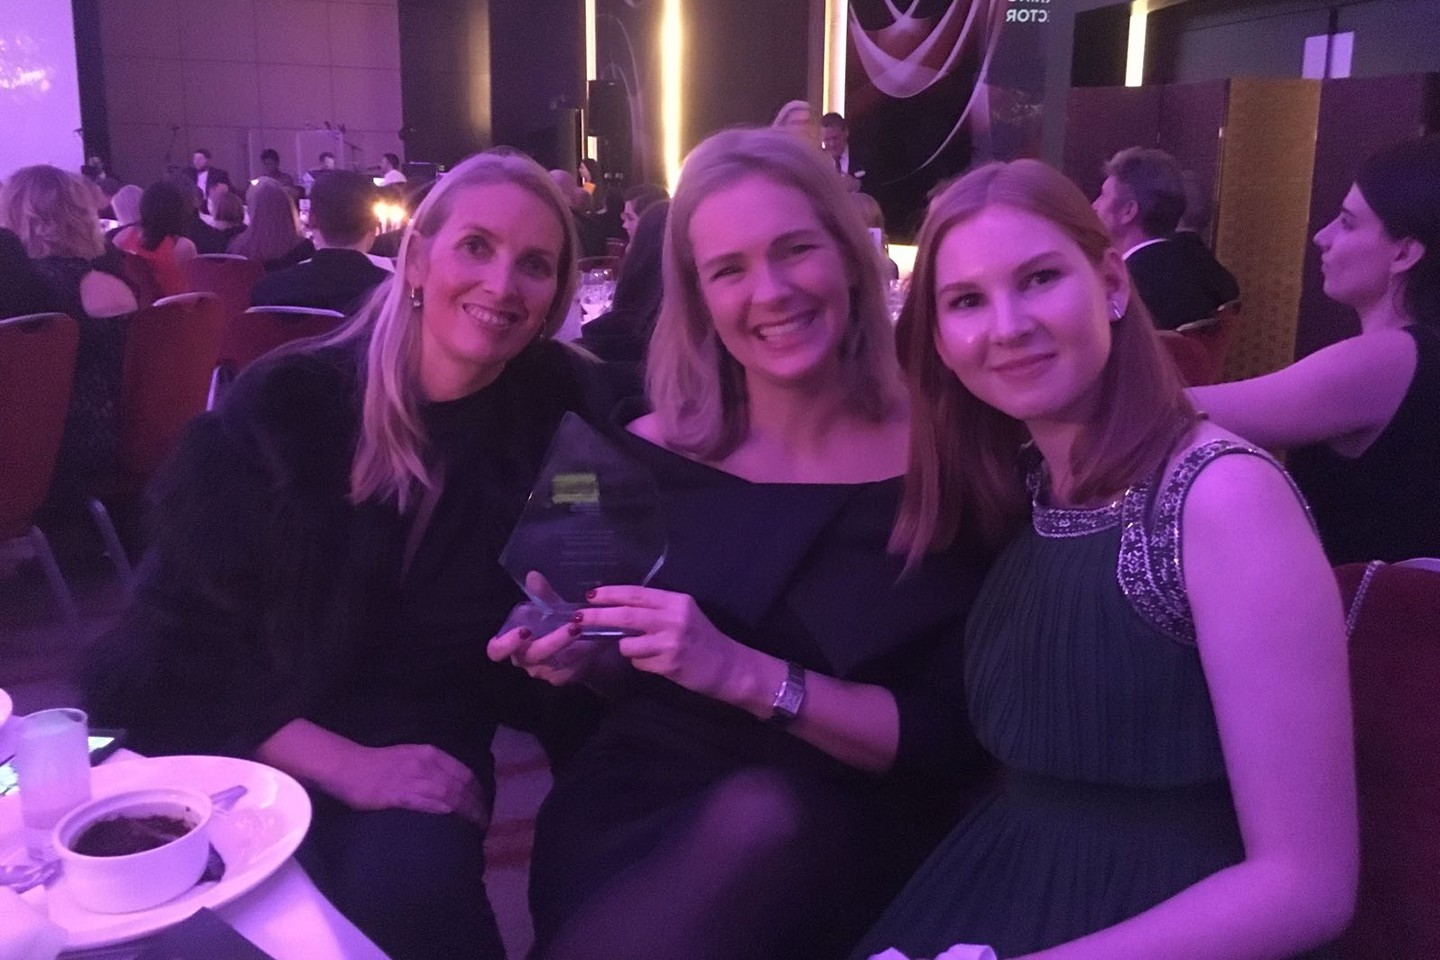 Hunkemöller with their first golden award!